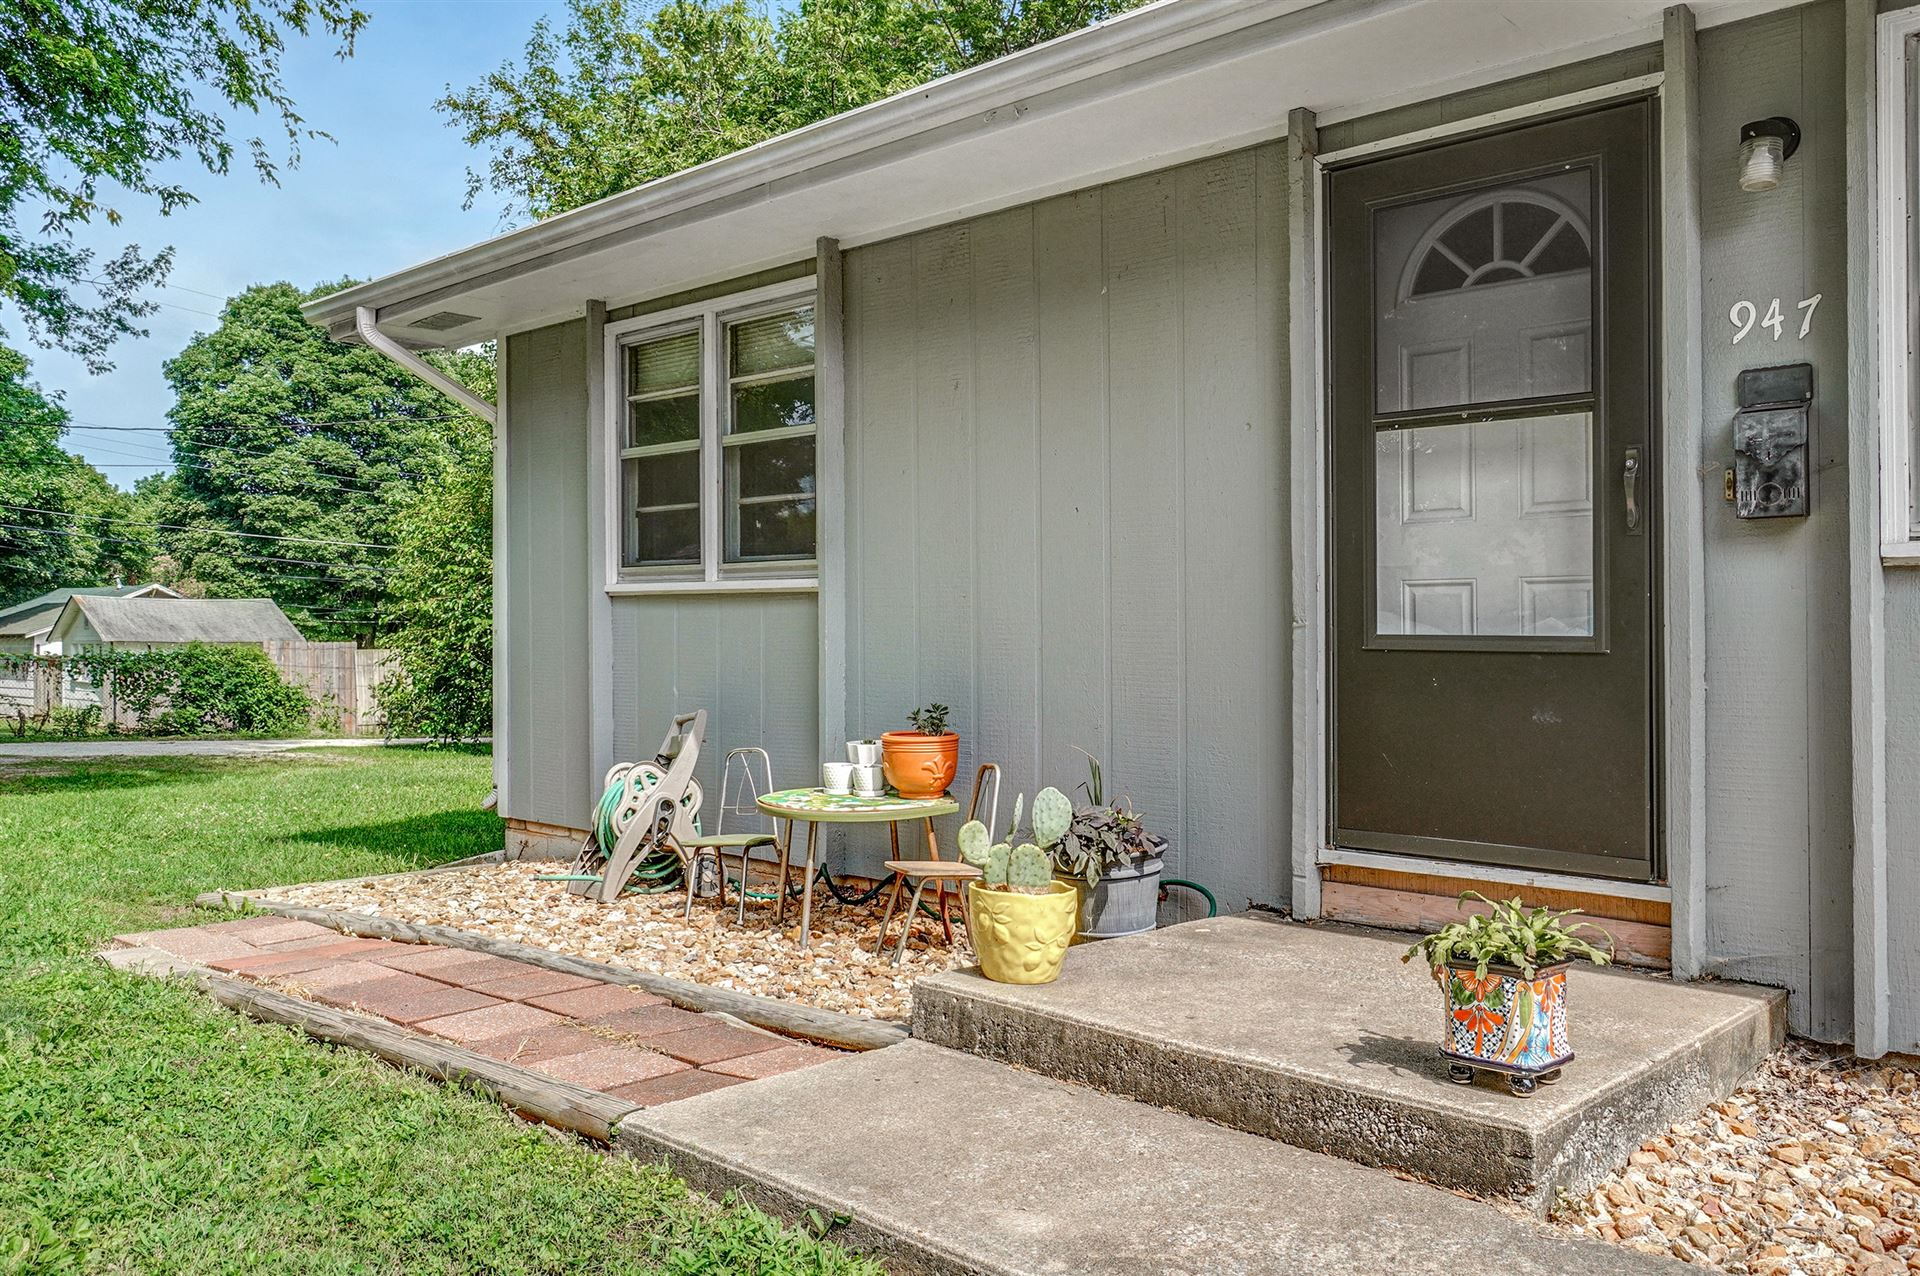 Photo of 945 947 South Fort Avenue, Springfield, MO 65806 (MLS # 60197687)